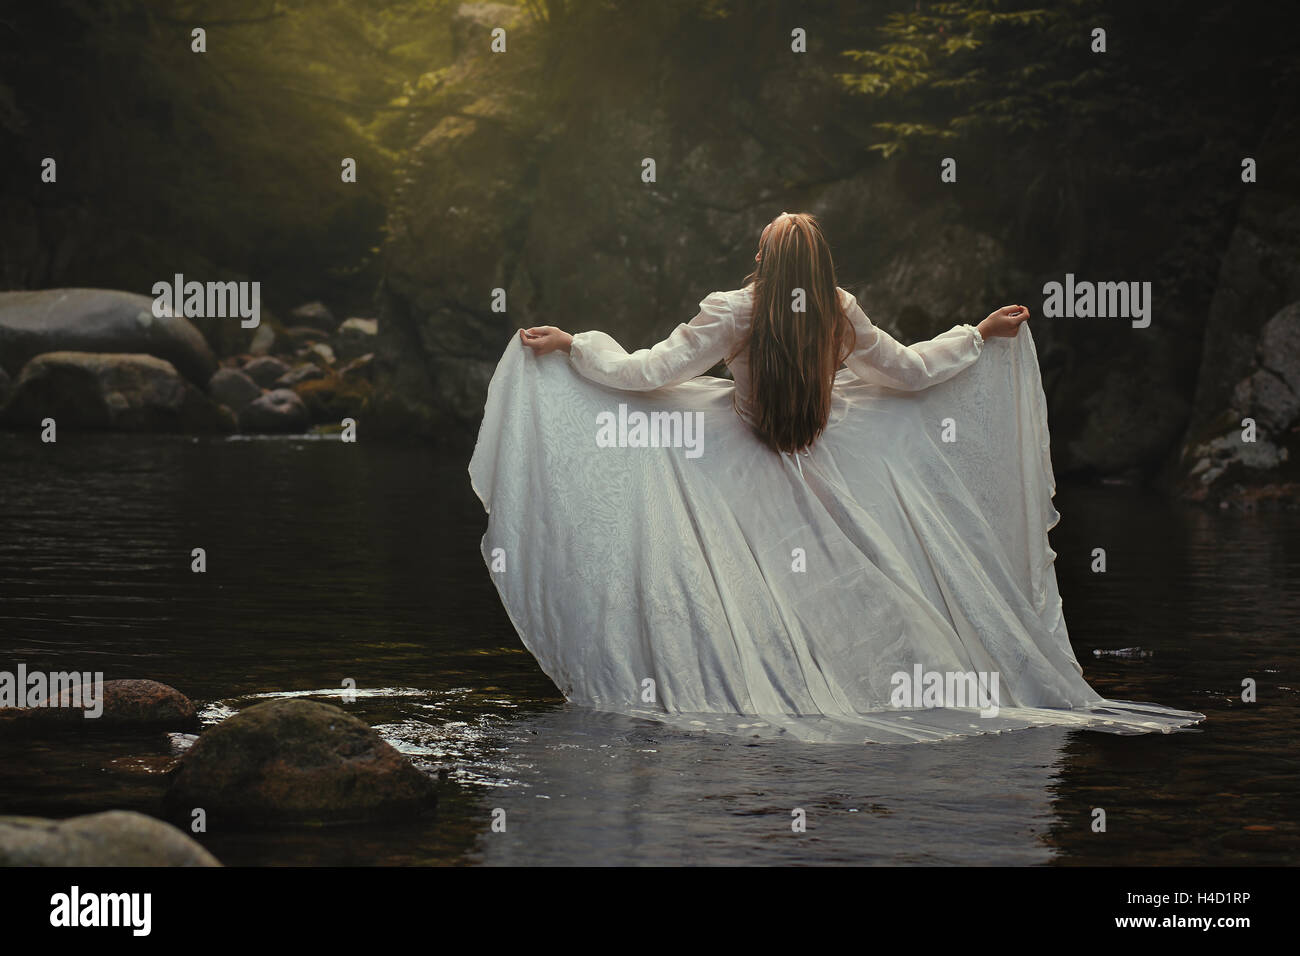 Ethereal woman listening the river music. Surreal and romantic - Stock Image